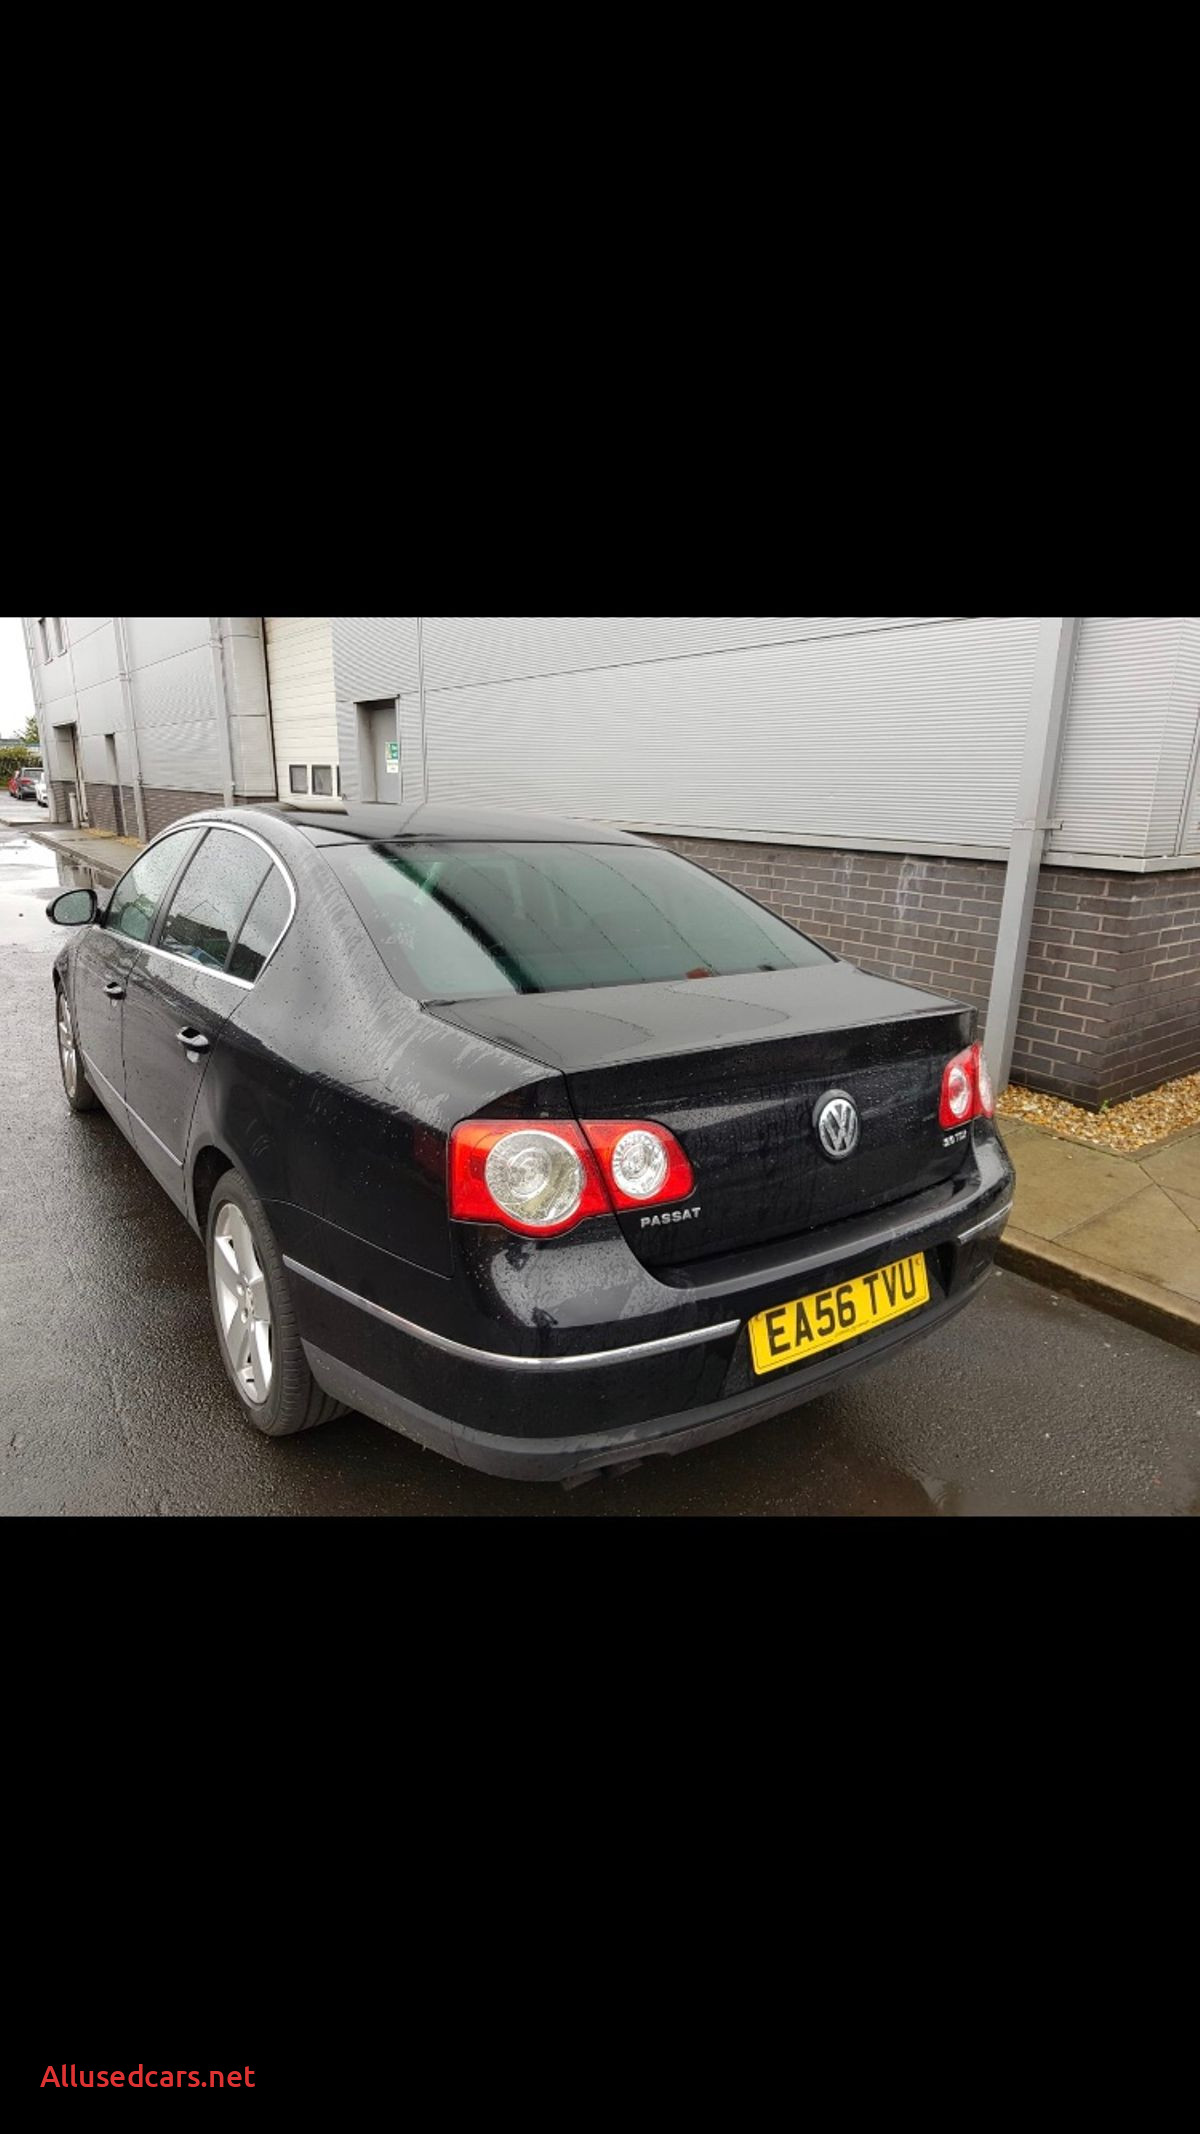 Vw Passat 2015 Beautiful Vw Passat 2 0 Tdi Sport Breaking In L30 Sefton for